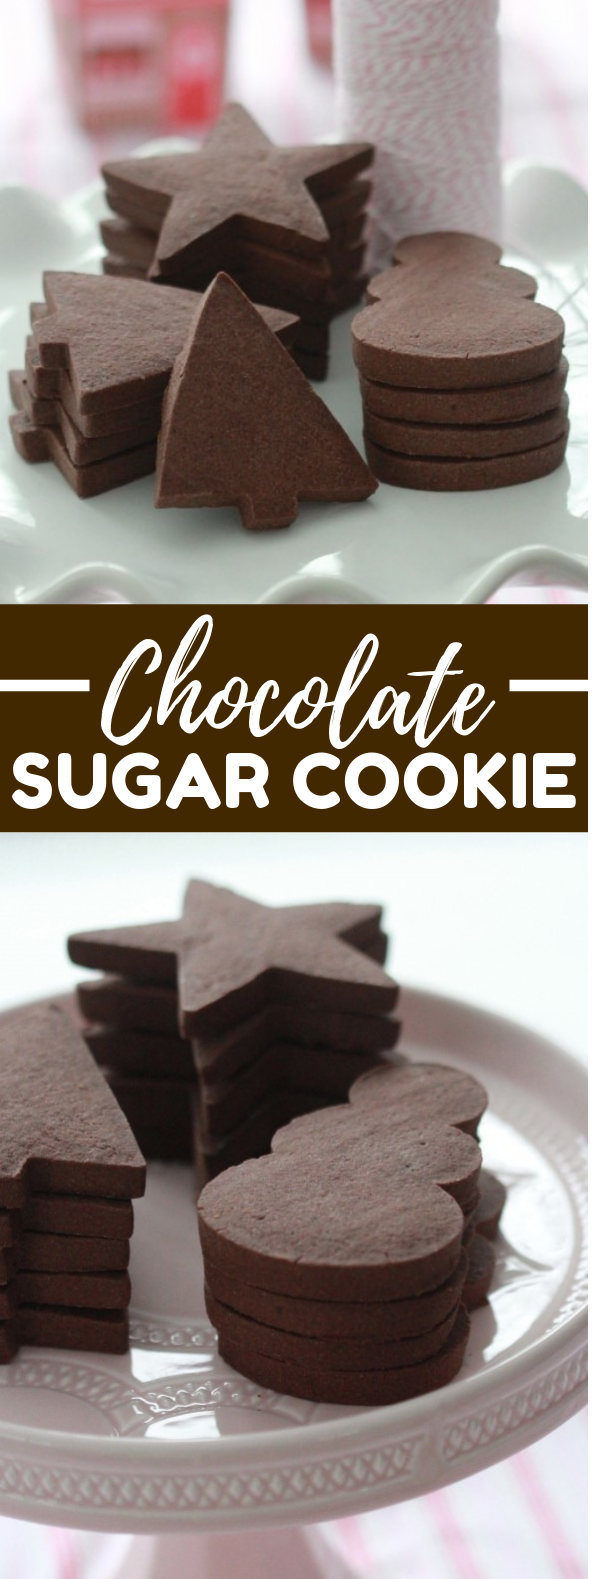 Chocolate Sugar Cookie Recipe {Cut Out Cookies} #desserts #sugarcookies